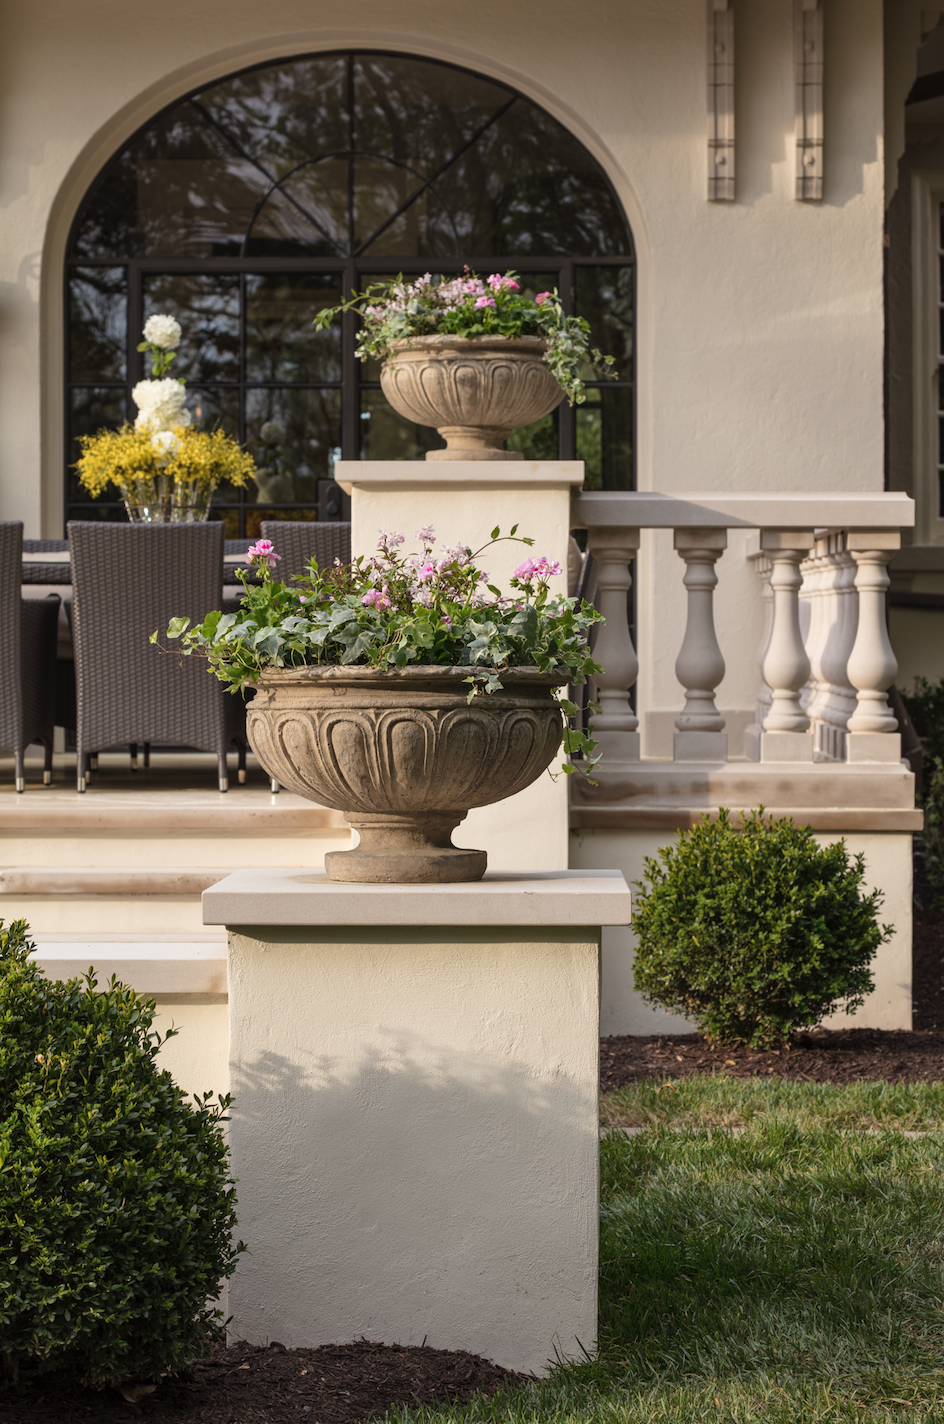 Marcia Fryer Landscape Designs | Baskerville Designed Mediterranean Inspired Home | AFTER Steel WIndows and Urns.png